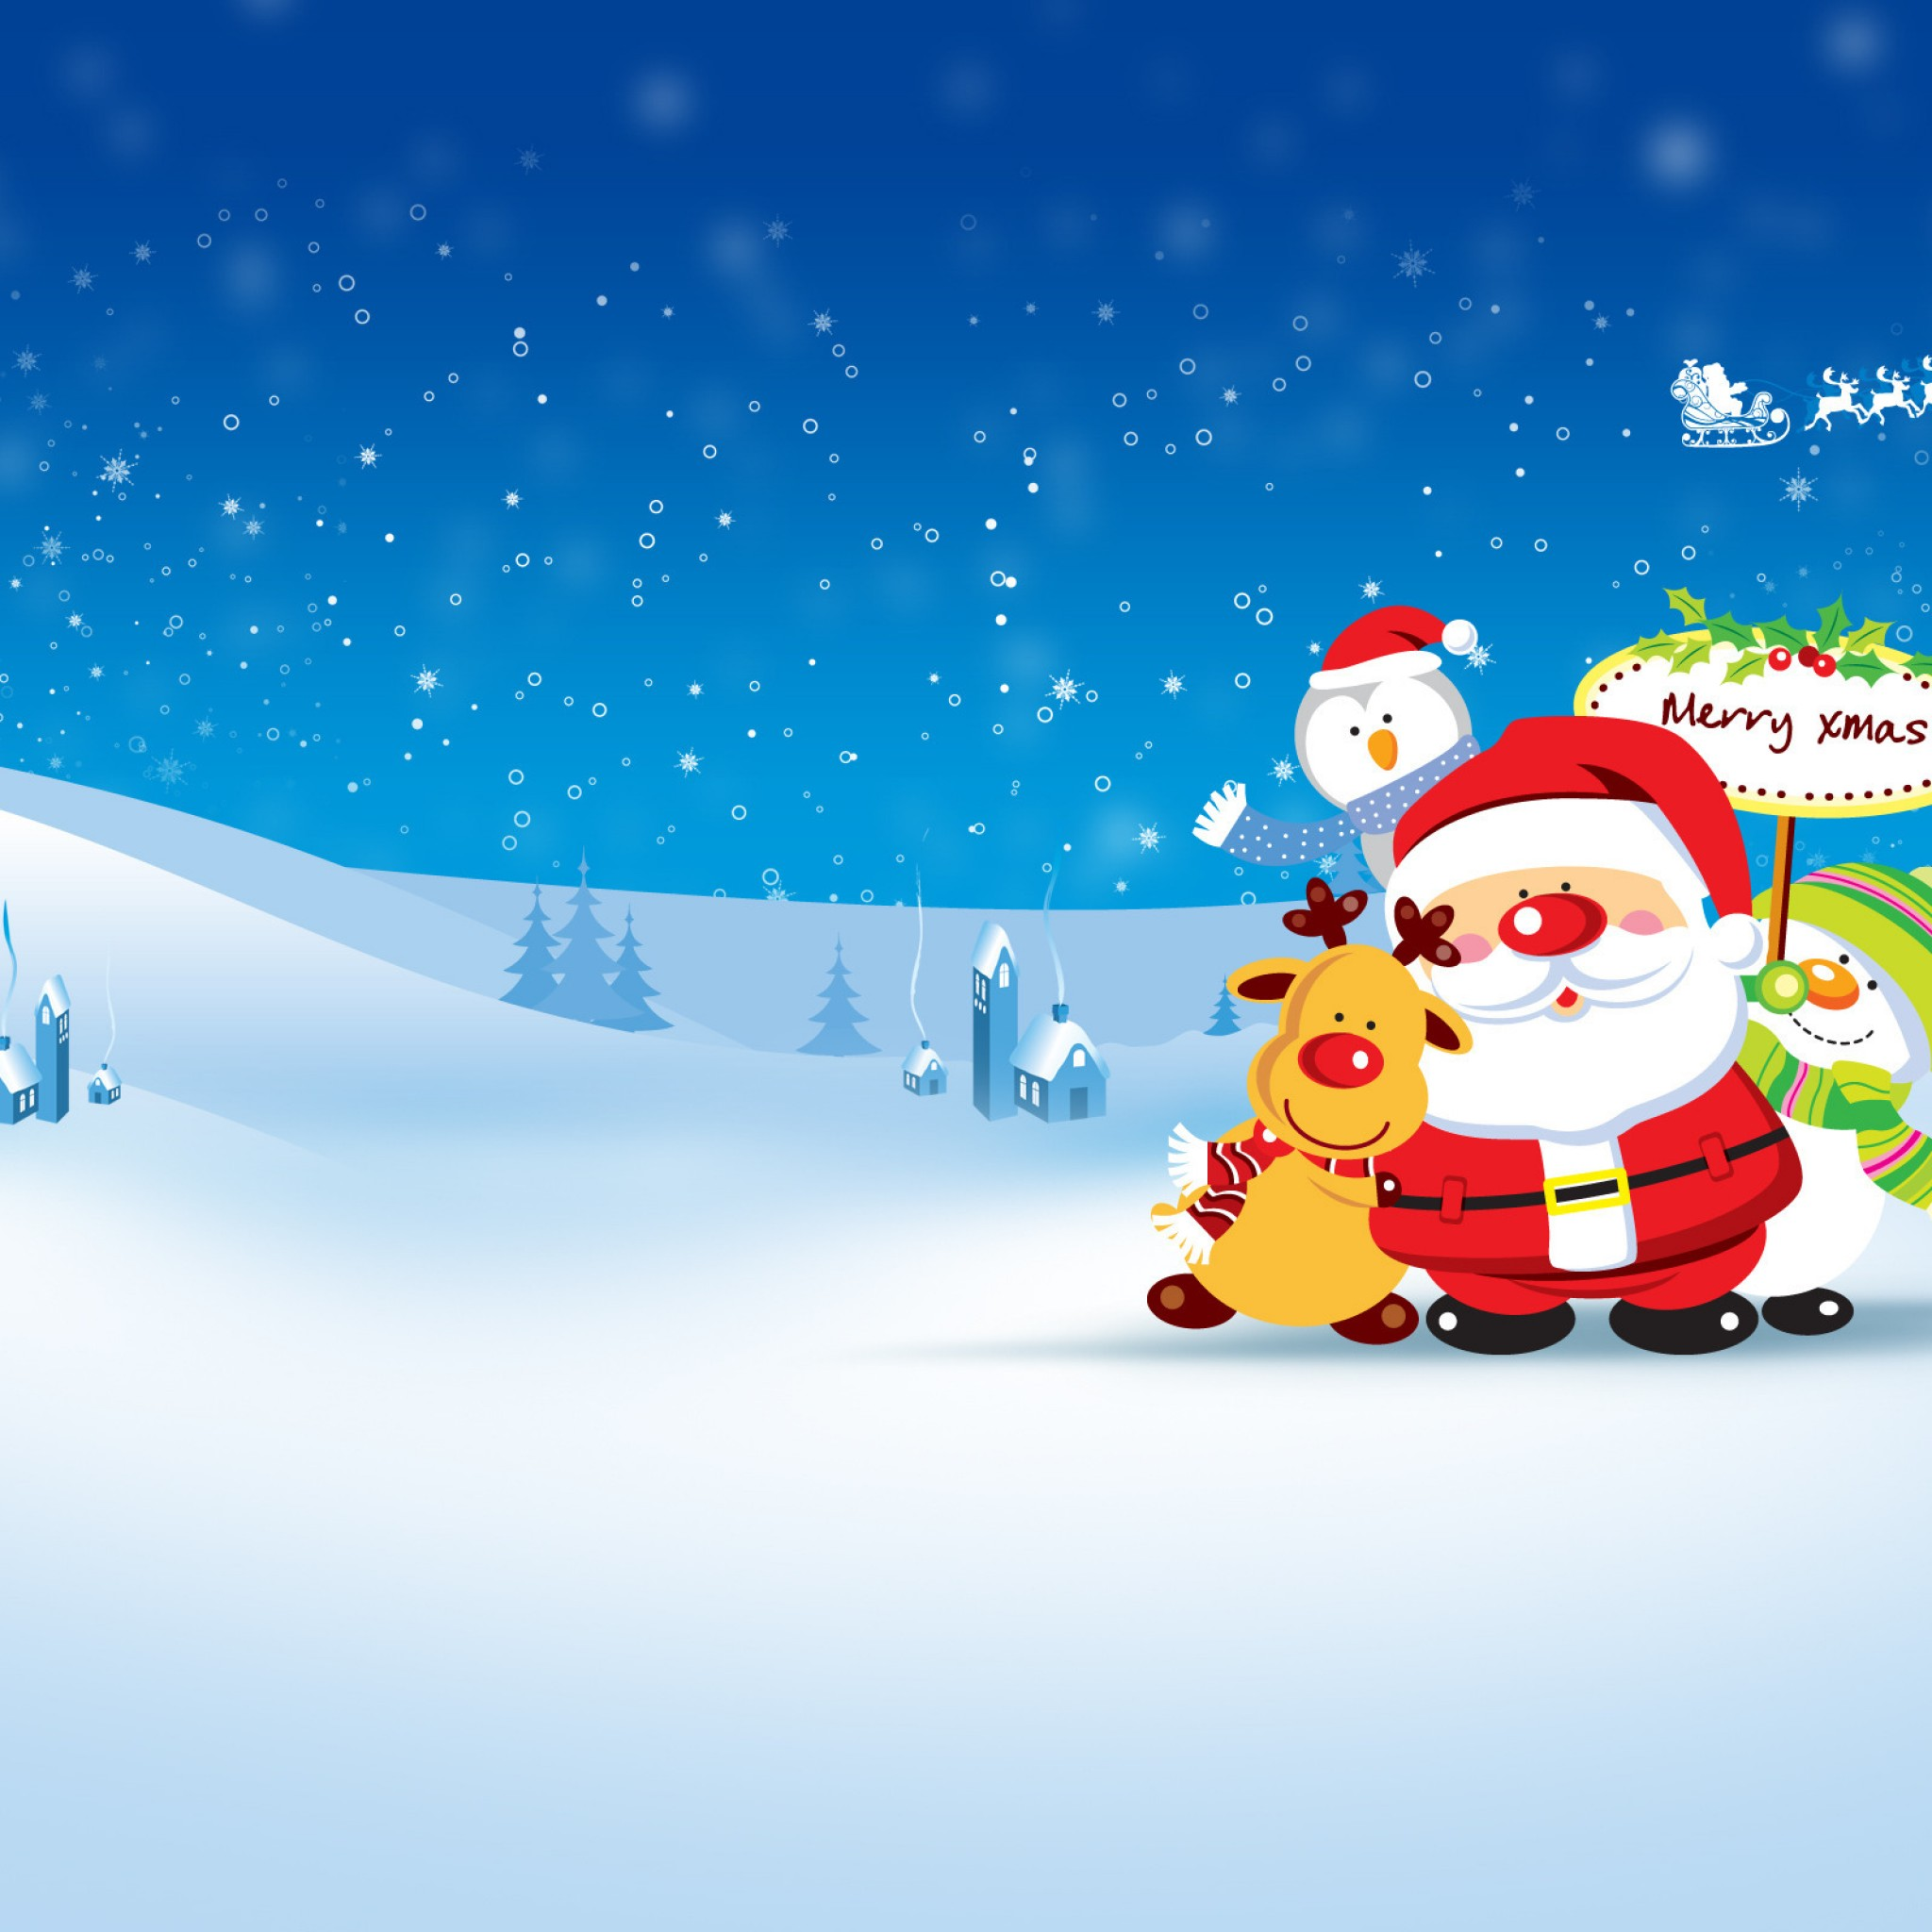 merry-xmas-holiday-christmas WALLPAPER